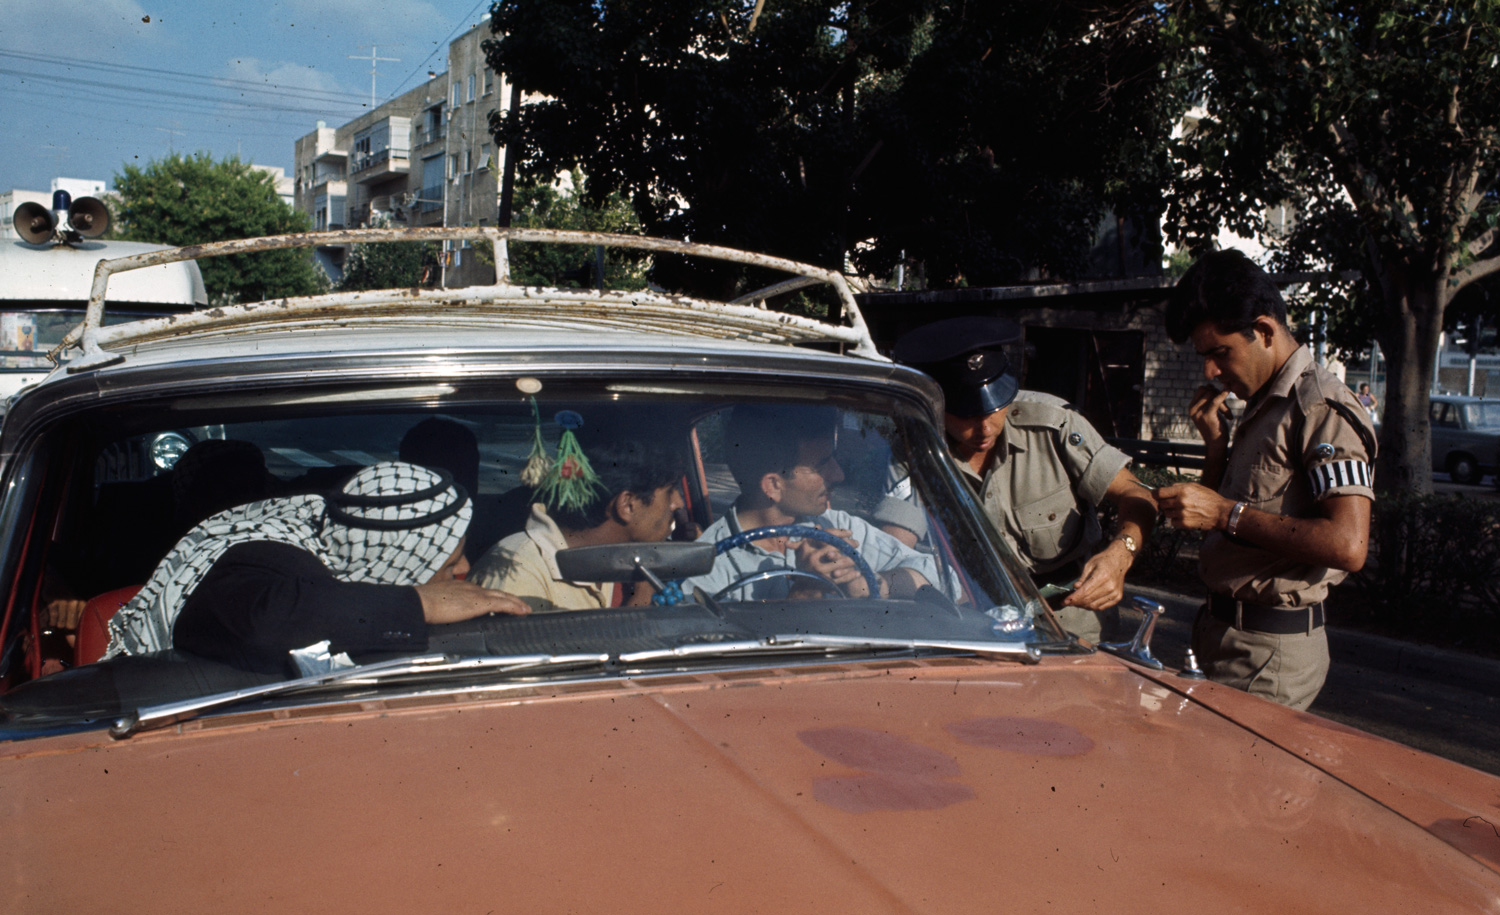 Palestinians in a car checked by Israeli soldiers in July 1967. Manuel Litran/Paris Match via Getty Images.